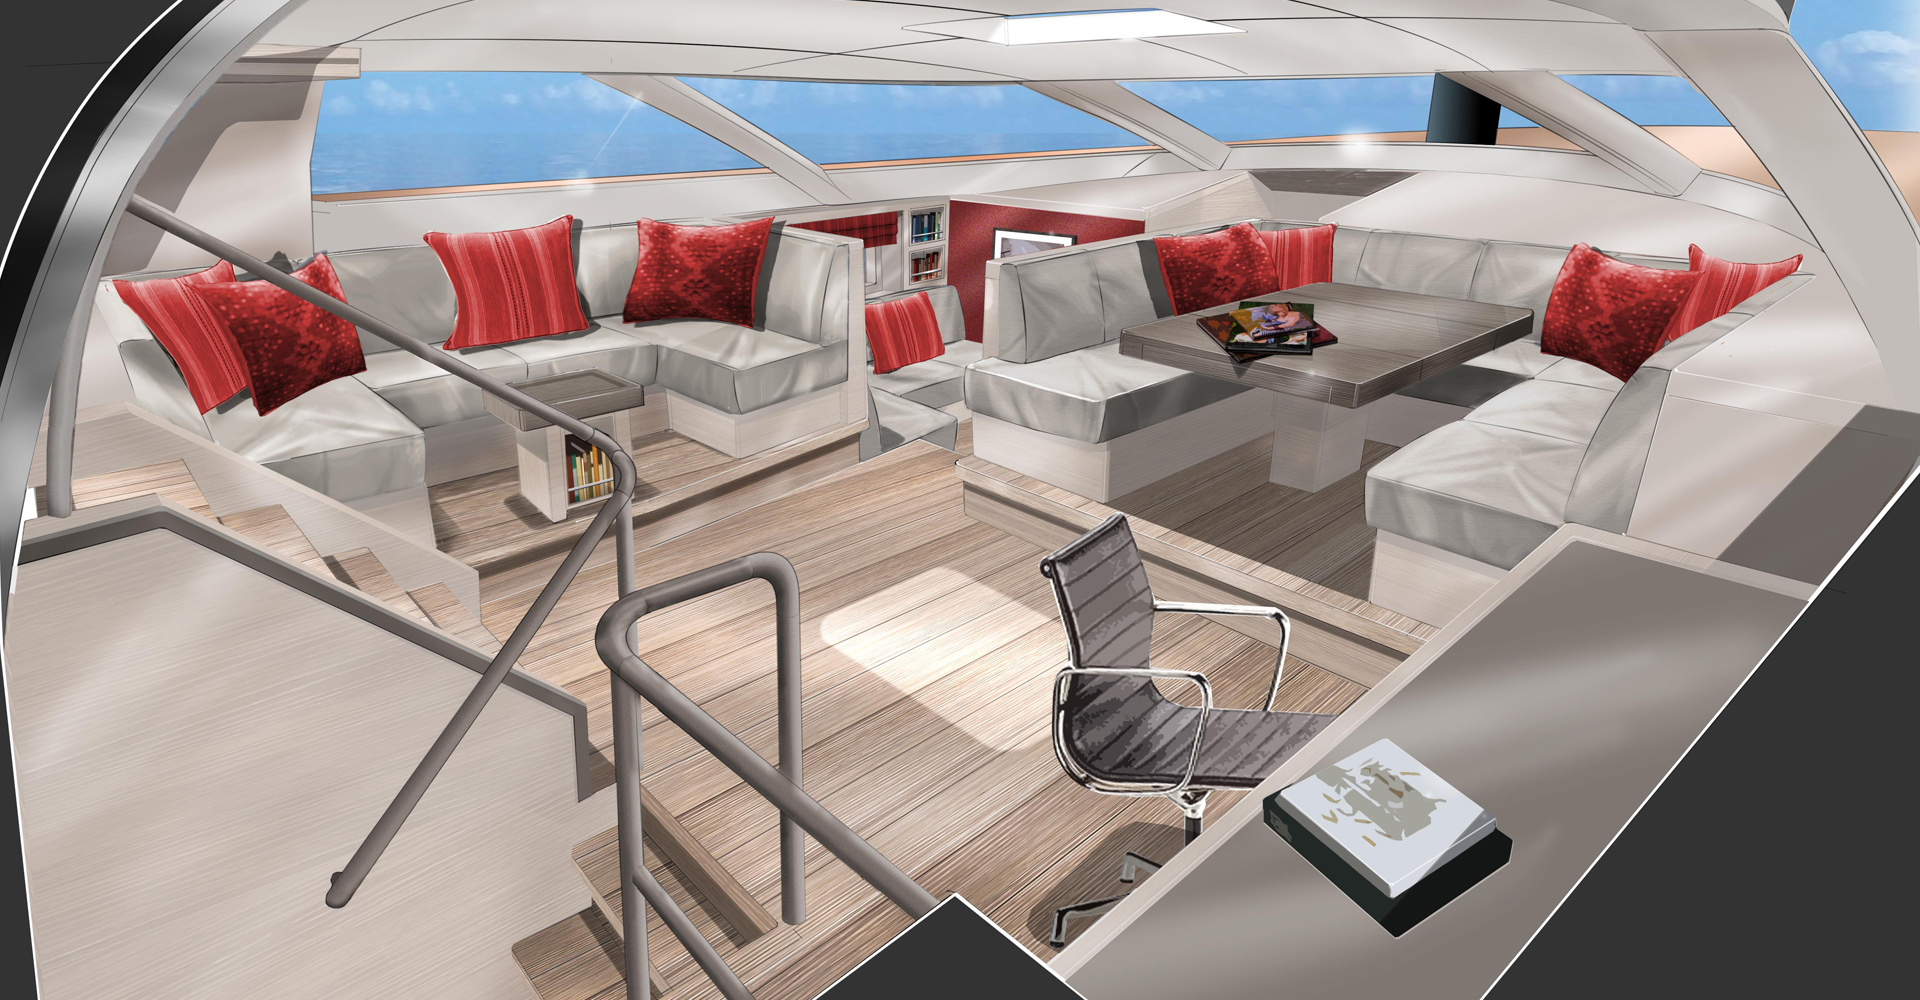 Sketch of sailing yacht Missy's saloon